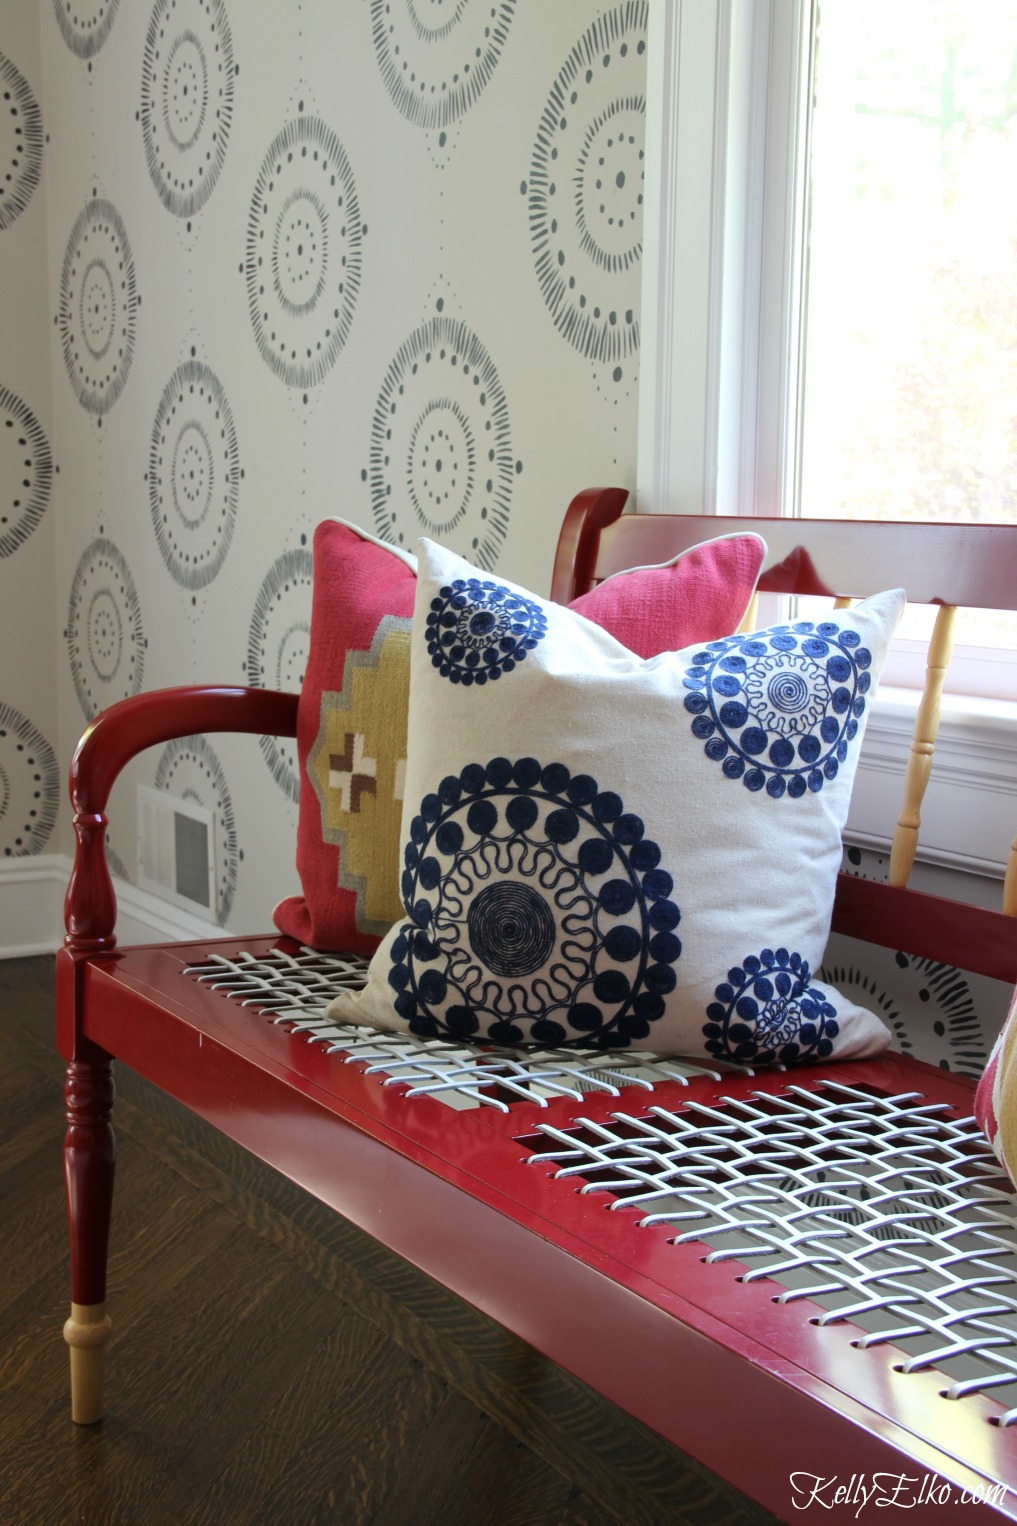 Forget wallpaper! This hand painted mural is like faux wallpaper minus the expense an I love the red lacquer bench with woven seat kellyelko.com #bench #wallpaper #mural #diningroom #wallart #handpainted